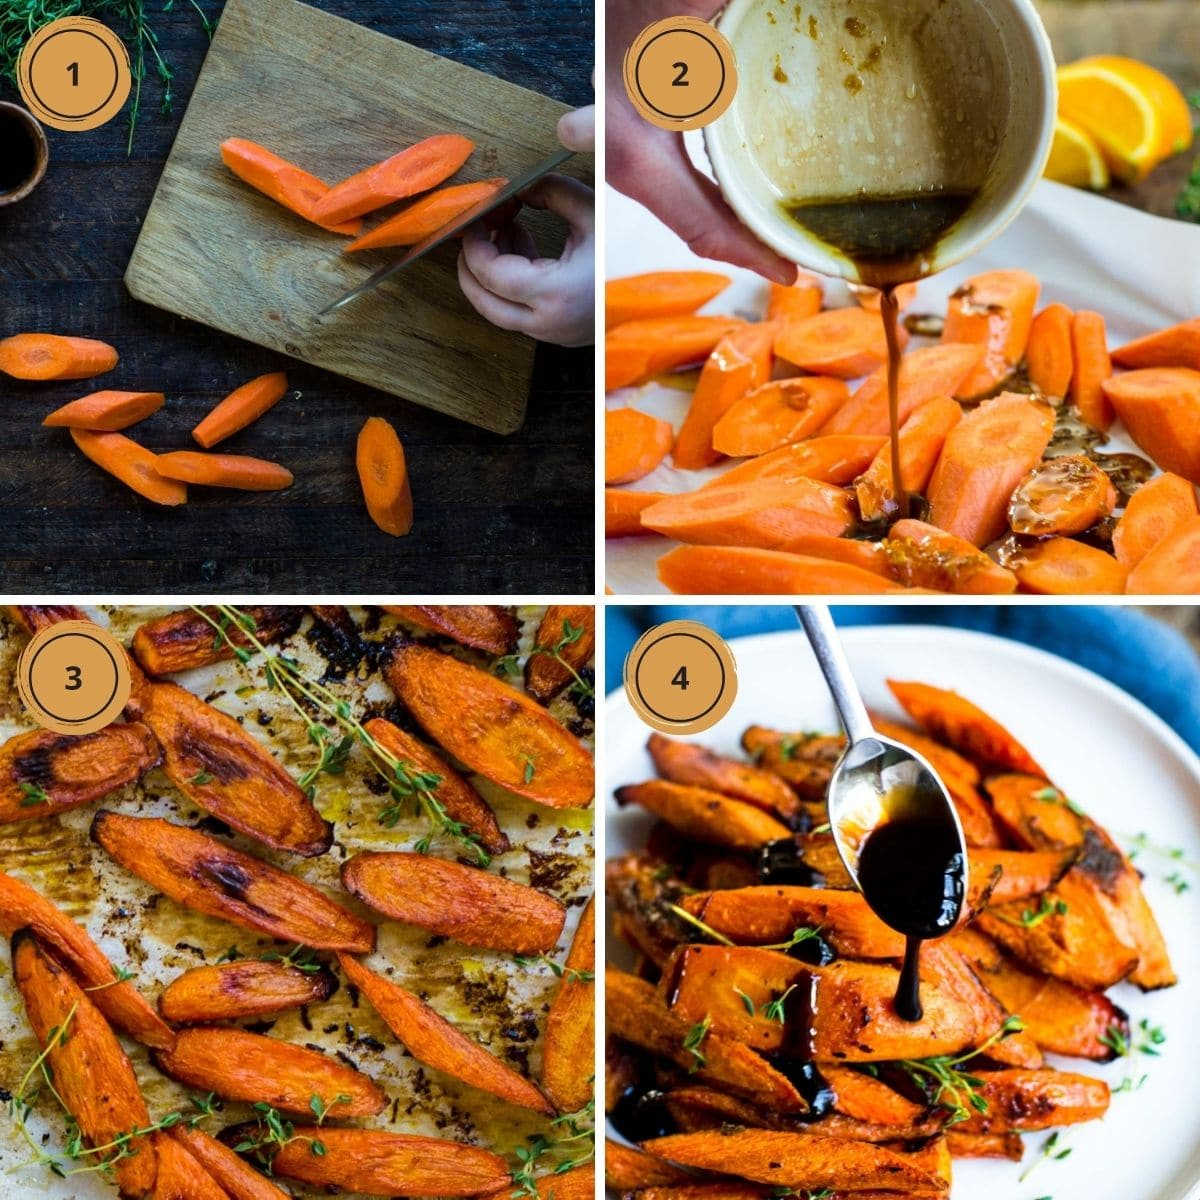 Four numbered square showing the steps for making Honey Balsamic Glazed Carrots.